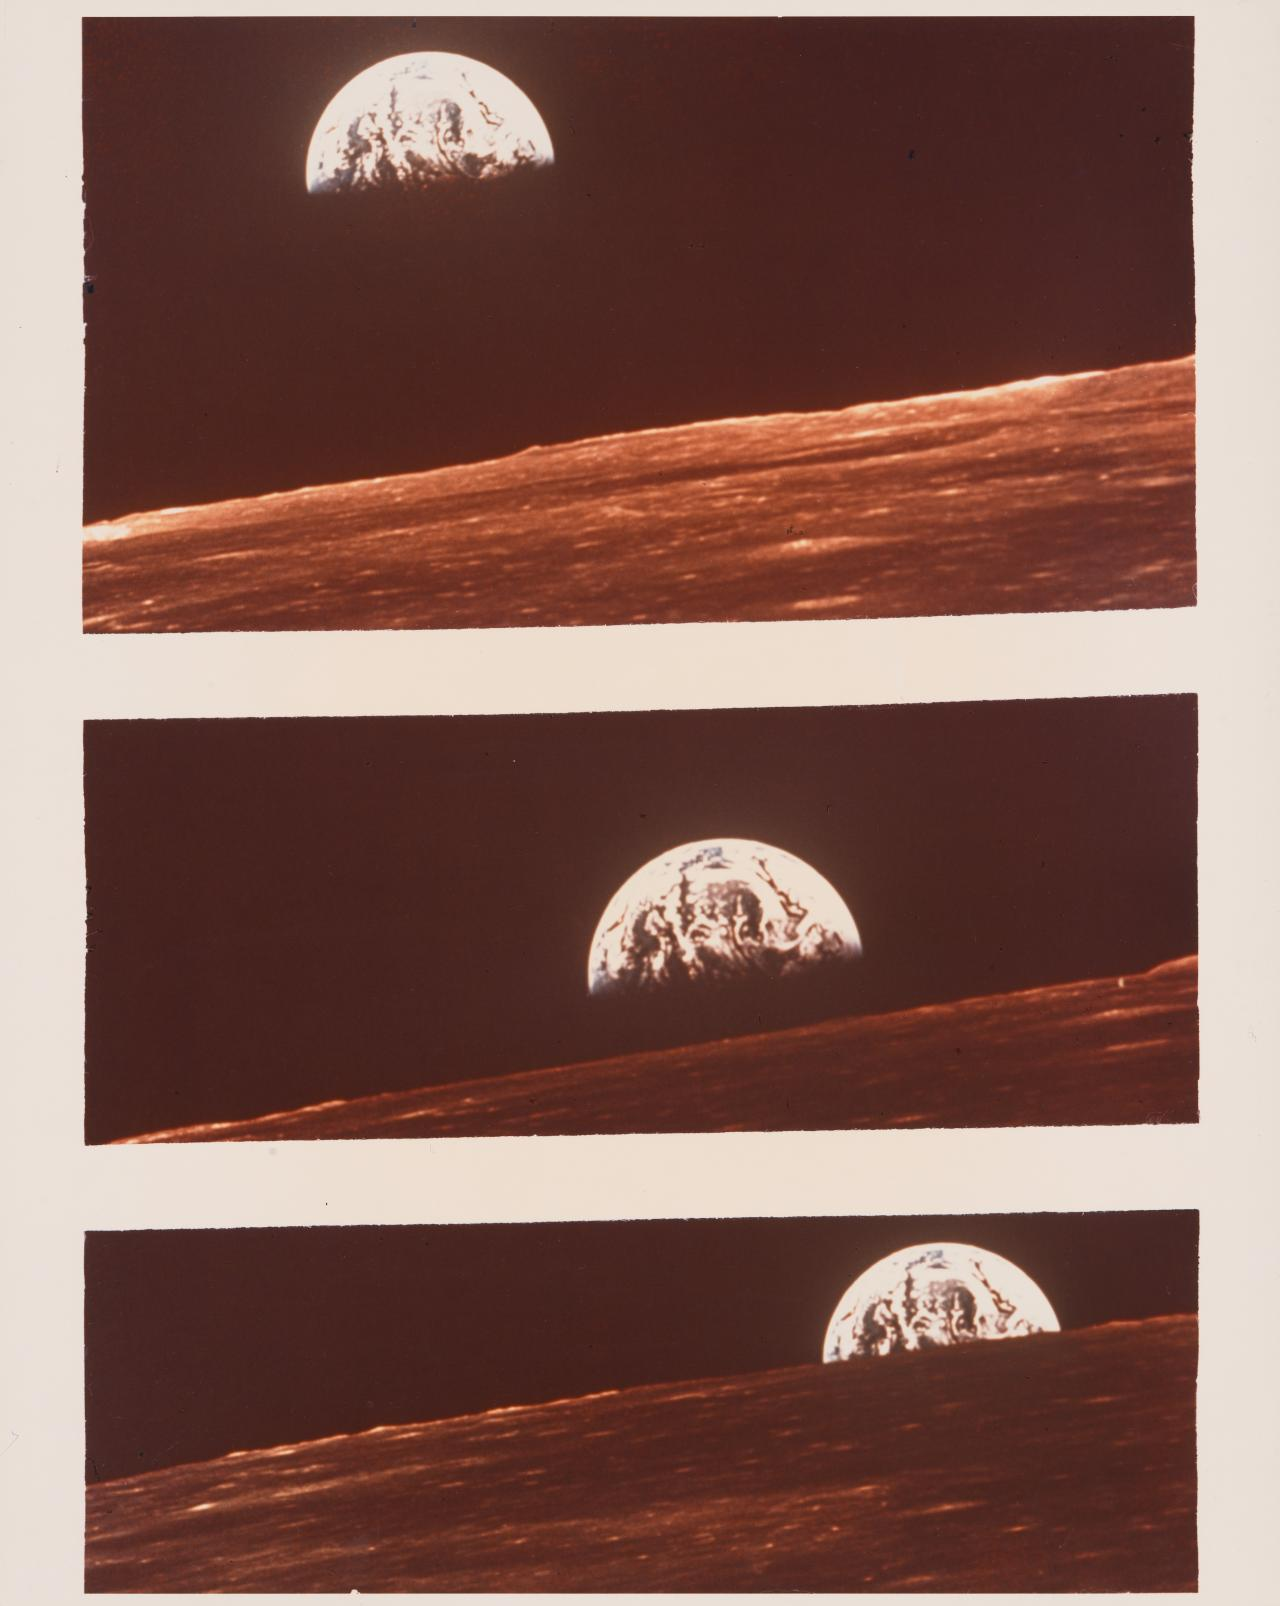 Sequence of earth rise over moon's horizon taken from Apollo 10 lunar